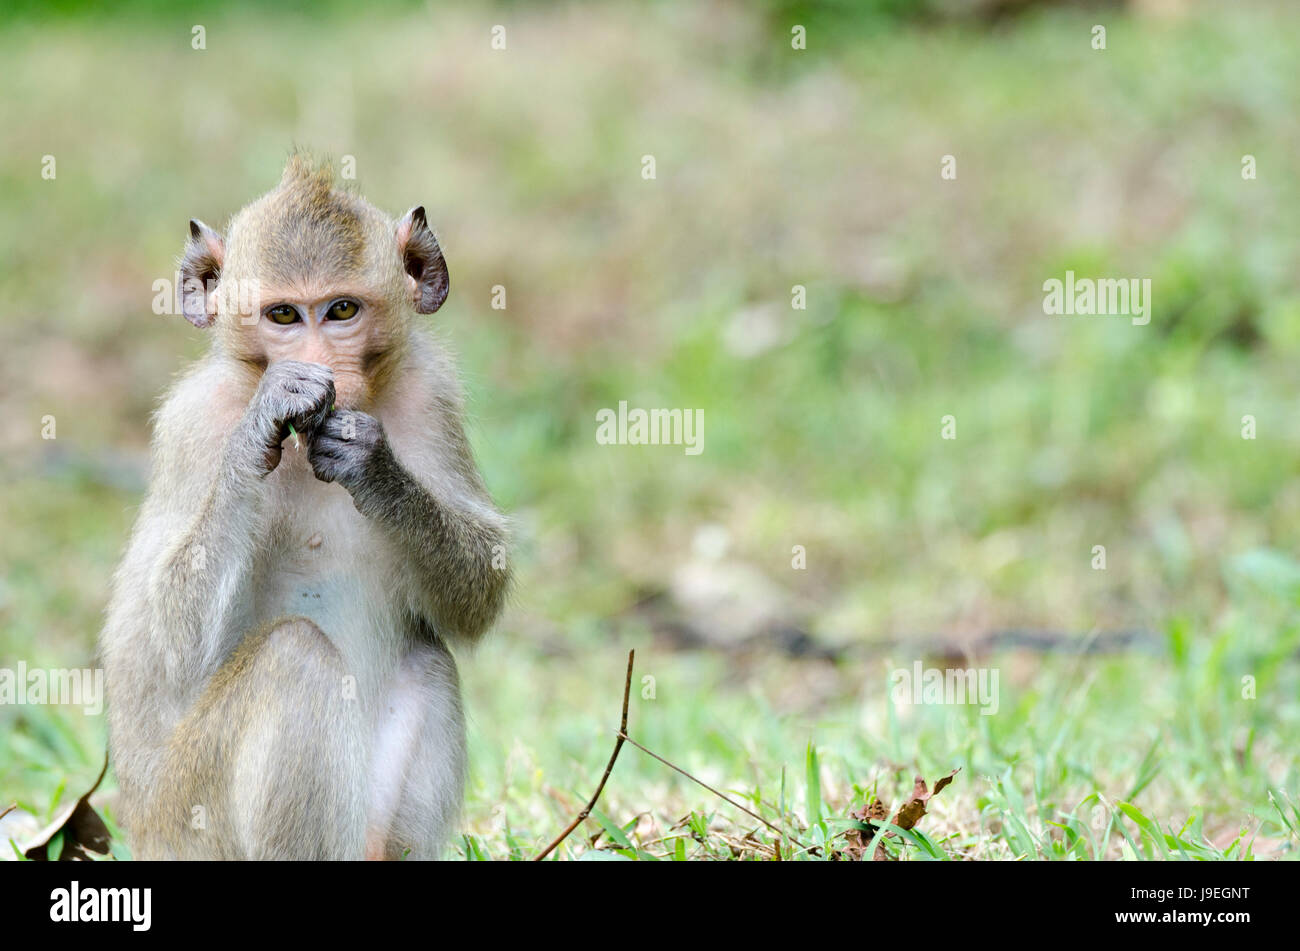 Crab-eating macaque (Macaca fascicularis) or long-tailed macaque animal looking straight into camera while feeding - Stock Image